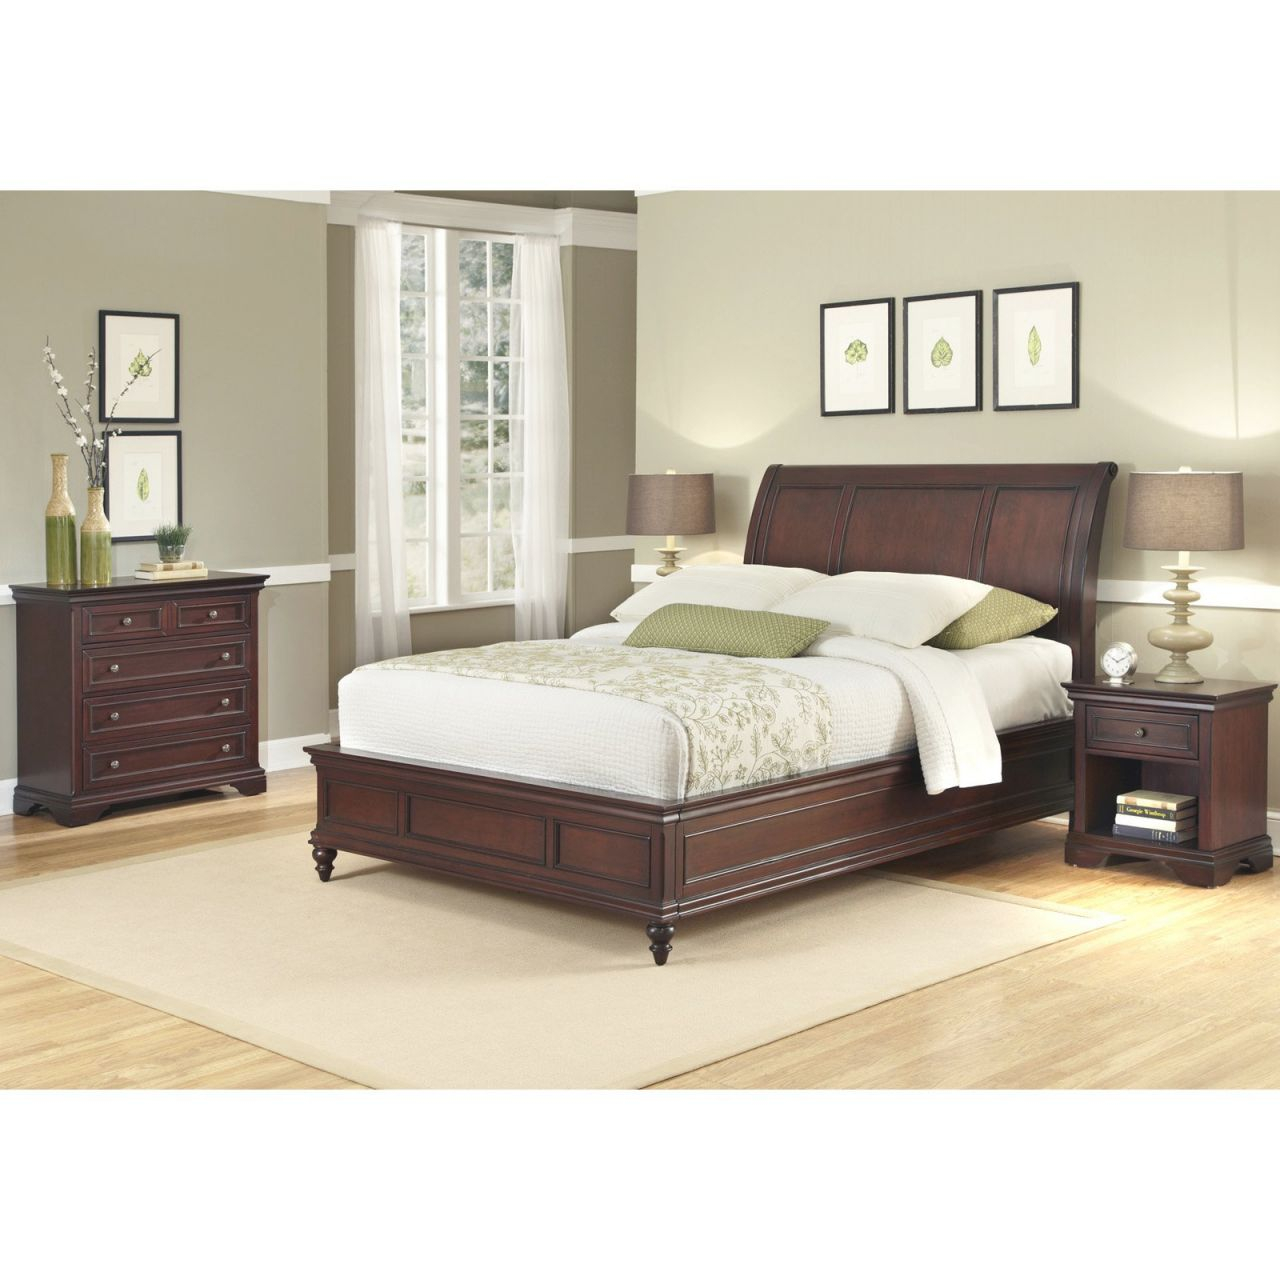 Home Styles Lafayette King/california King Sleigh Headboard, Rich Cherry for Best of King Bed Frame With Headboard